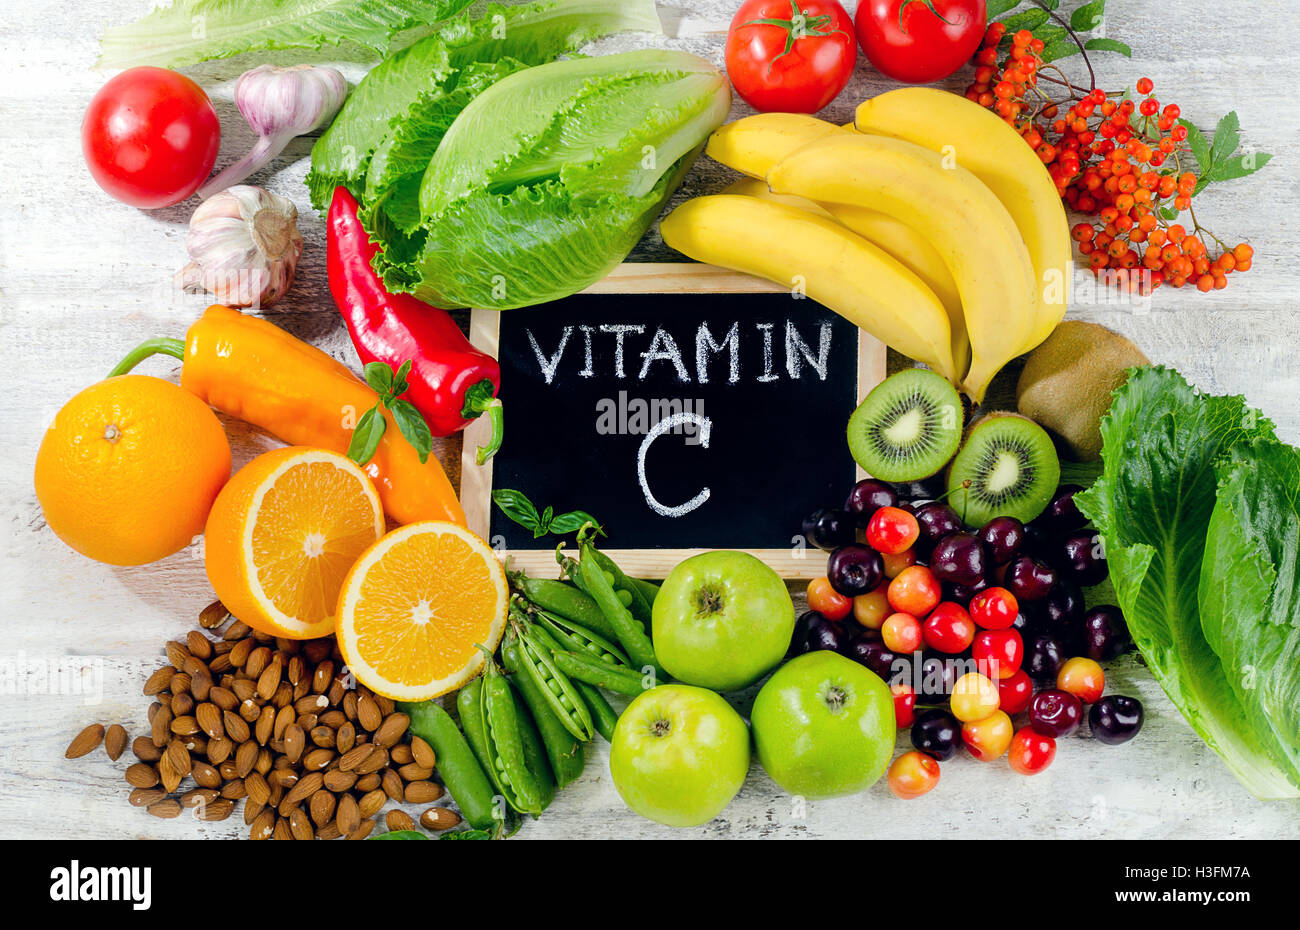 Foods High in vitamin C on white wooden board.  Healthy eating. Flat lay - Stock Image